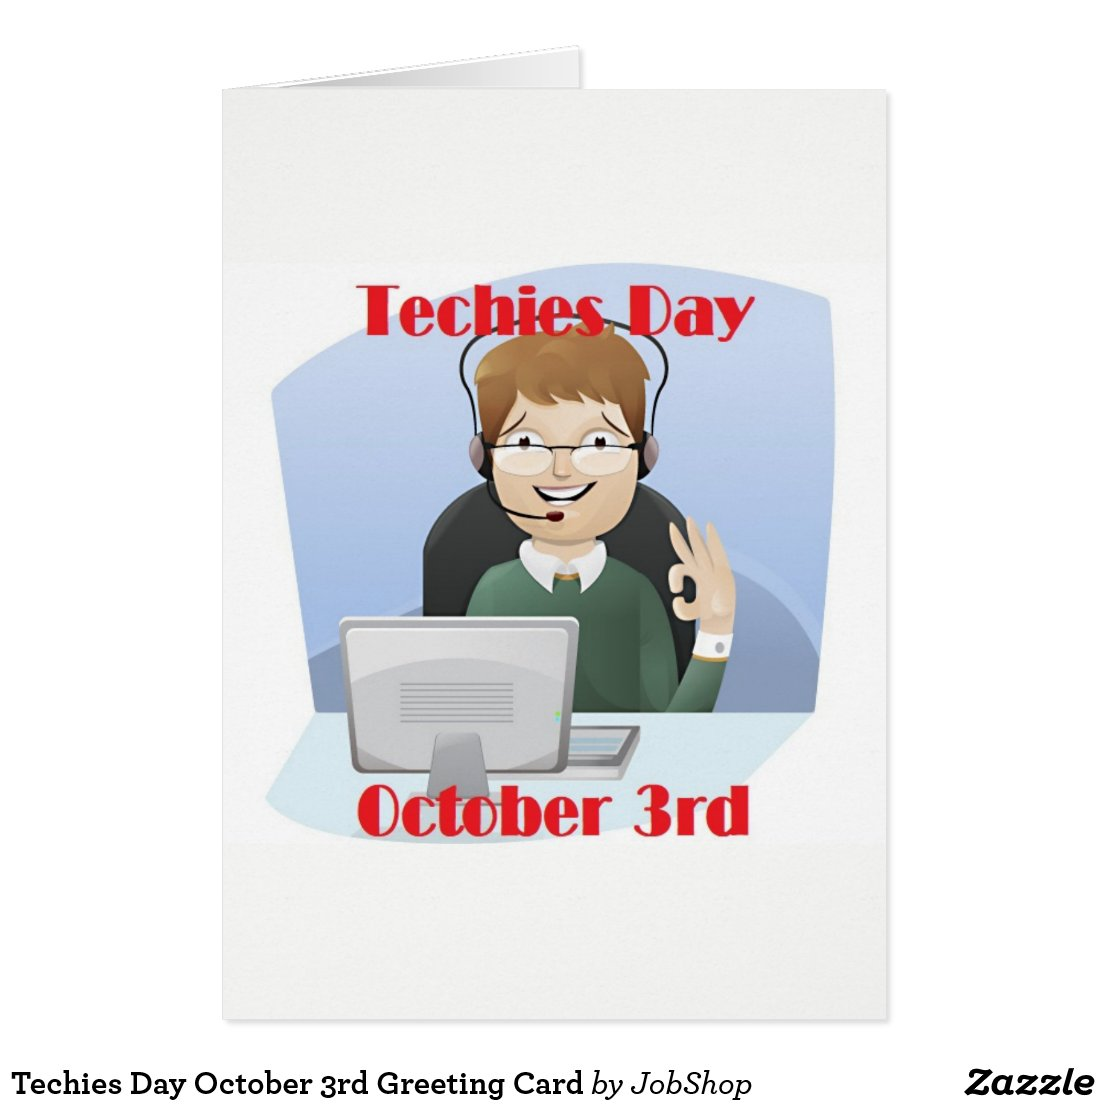 Techies Day October 3rd Greeting Card